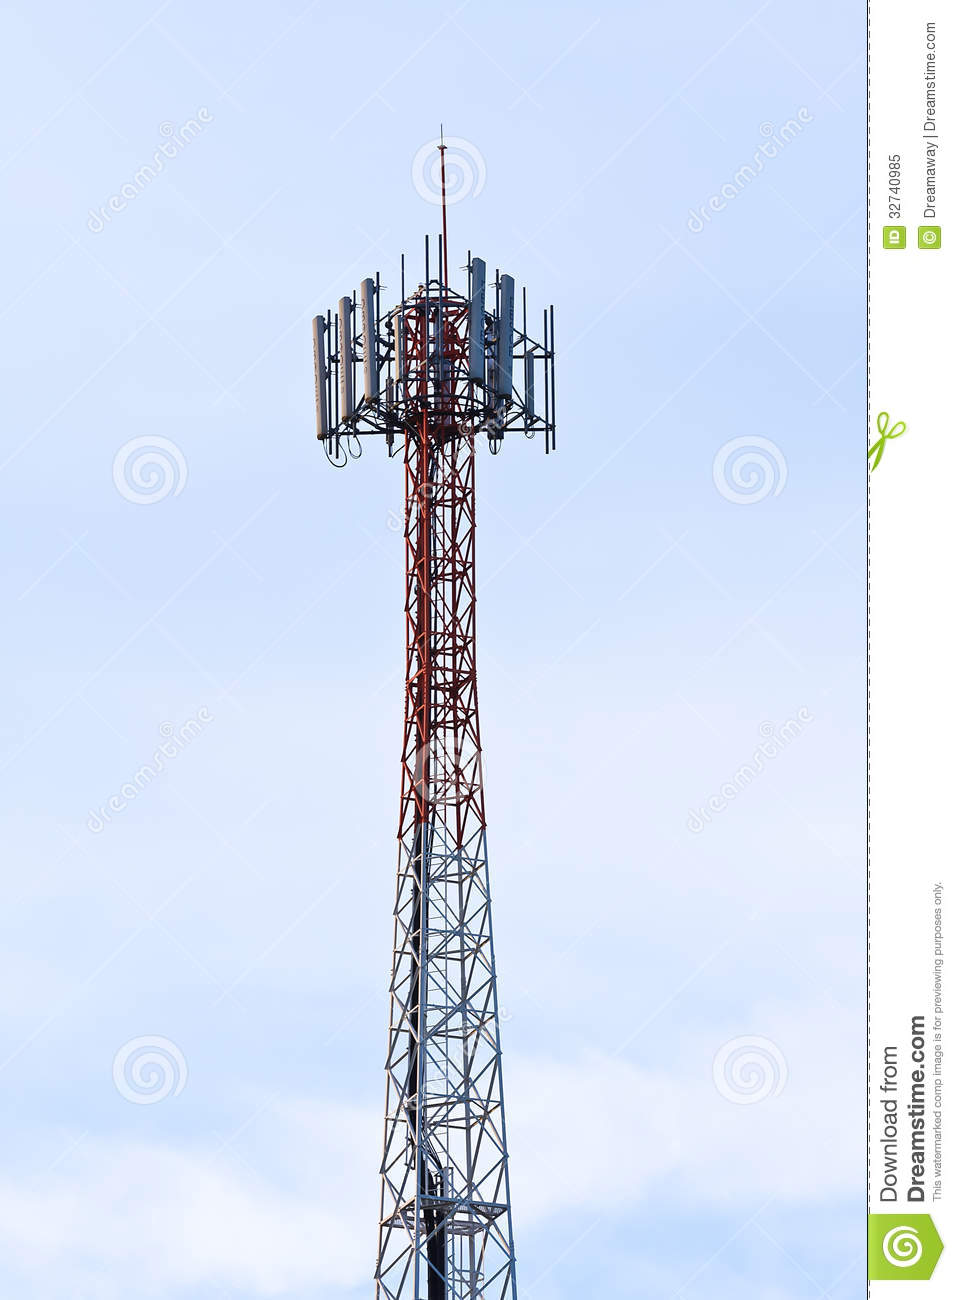 Telecom Tower. Royalty Free Stock Photo - Image: 32740985